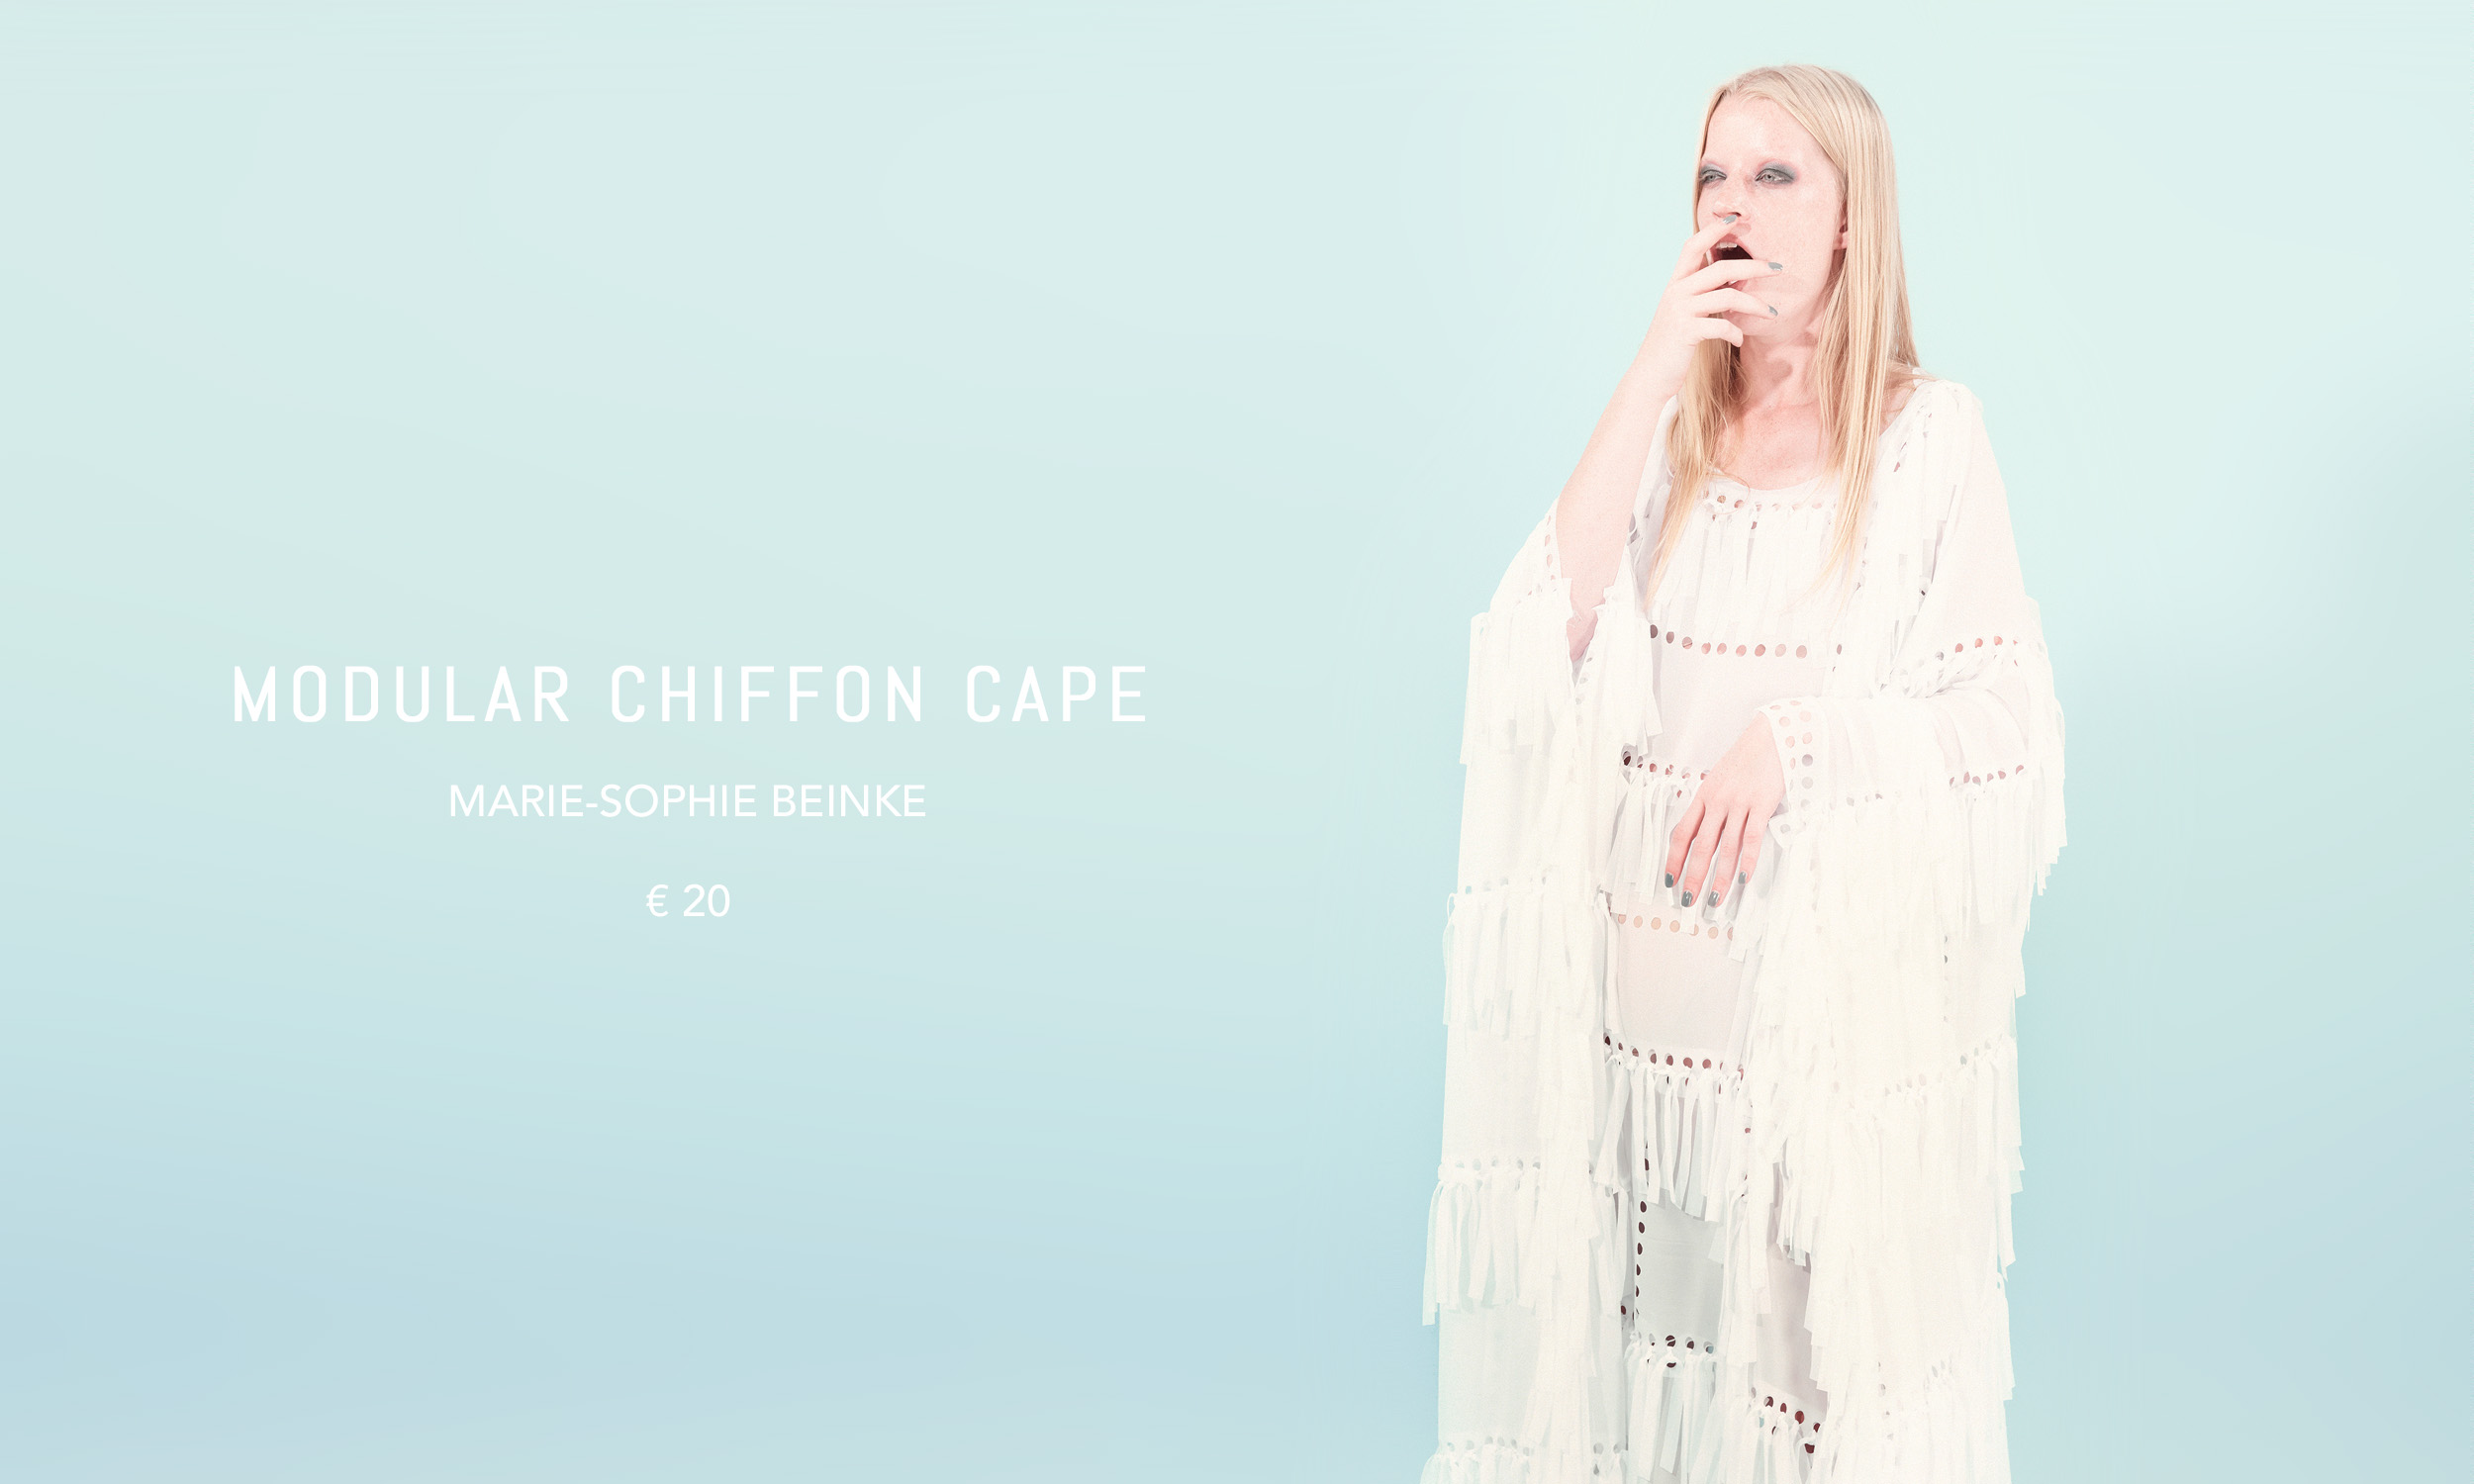 shop_landscape_digital_modularchiffoncape.jpg